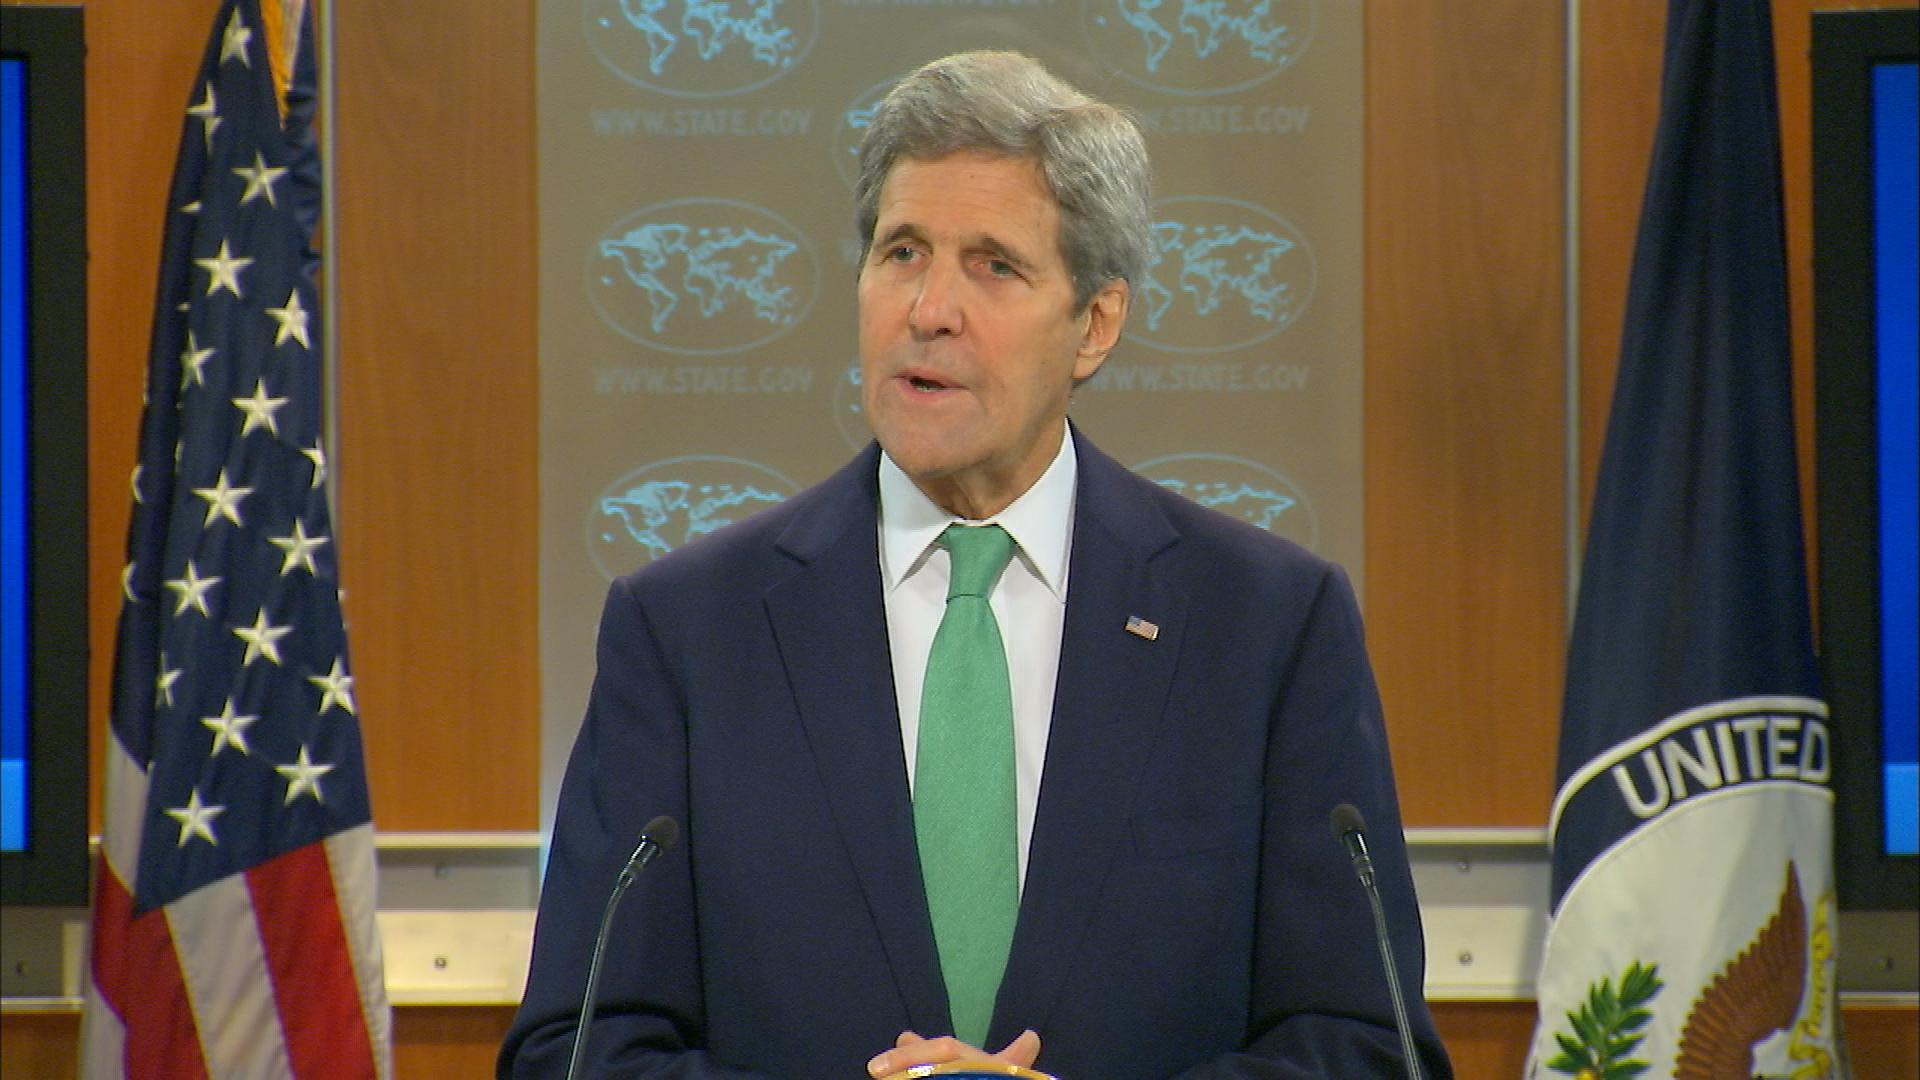 Kerry designates ISIS atrocities as genocide